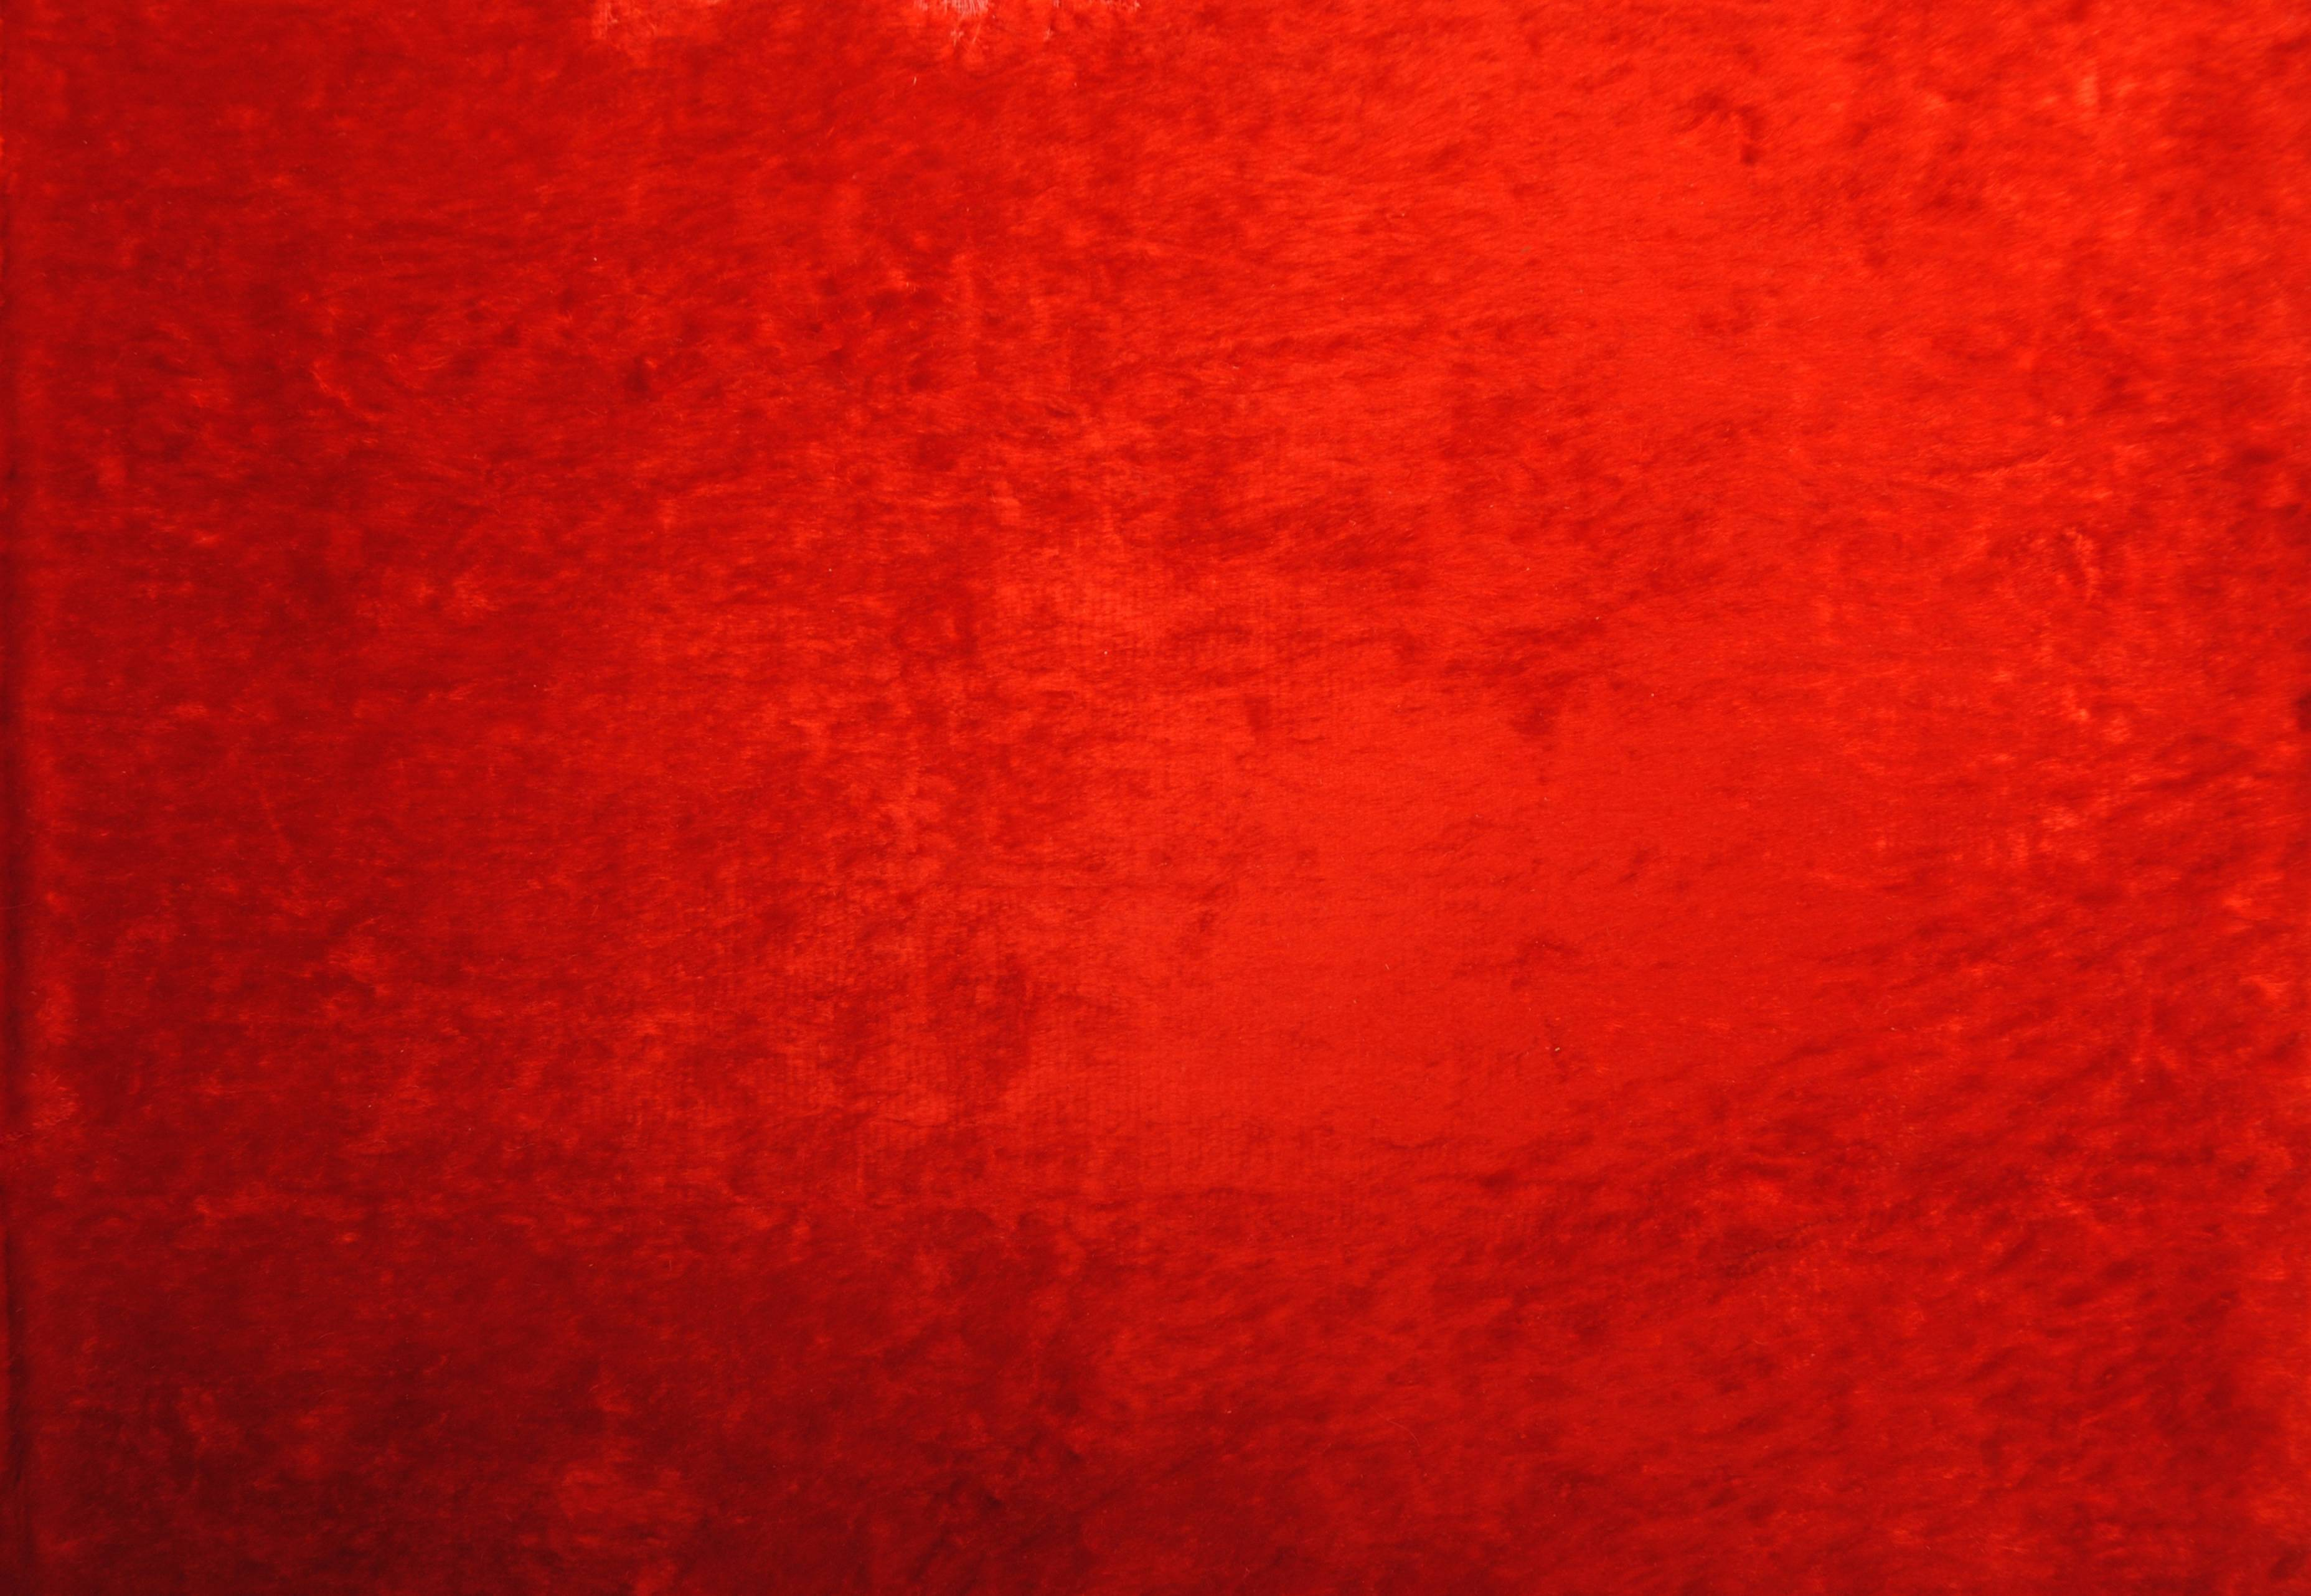 Free Red Texture Wallpapers Wide « Long Wallpapers